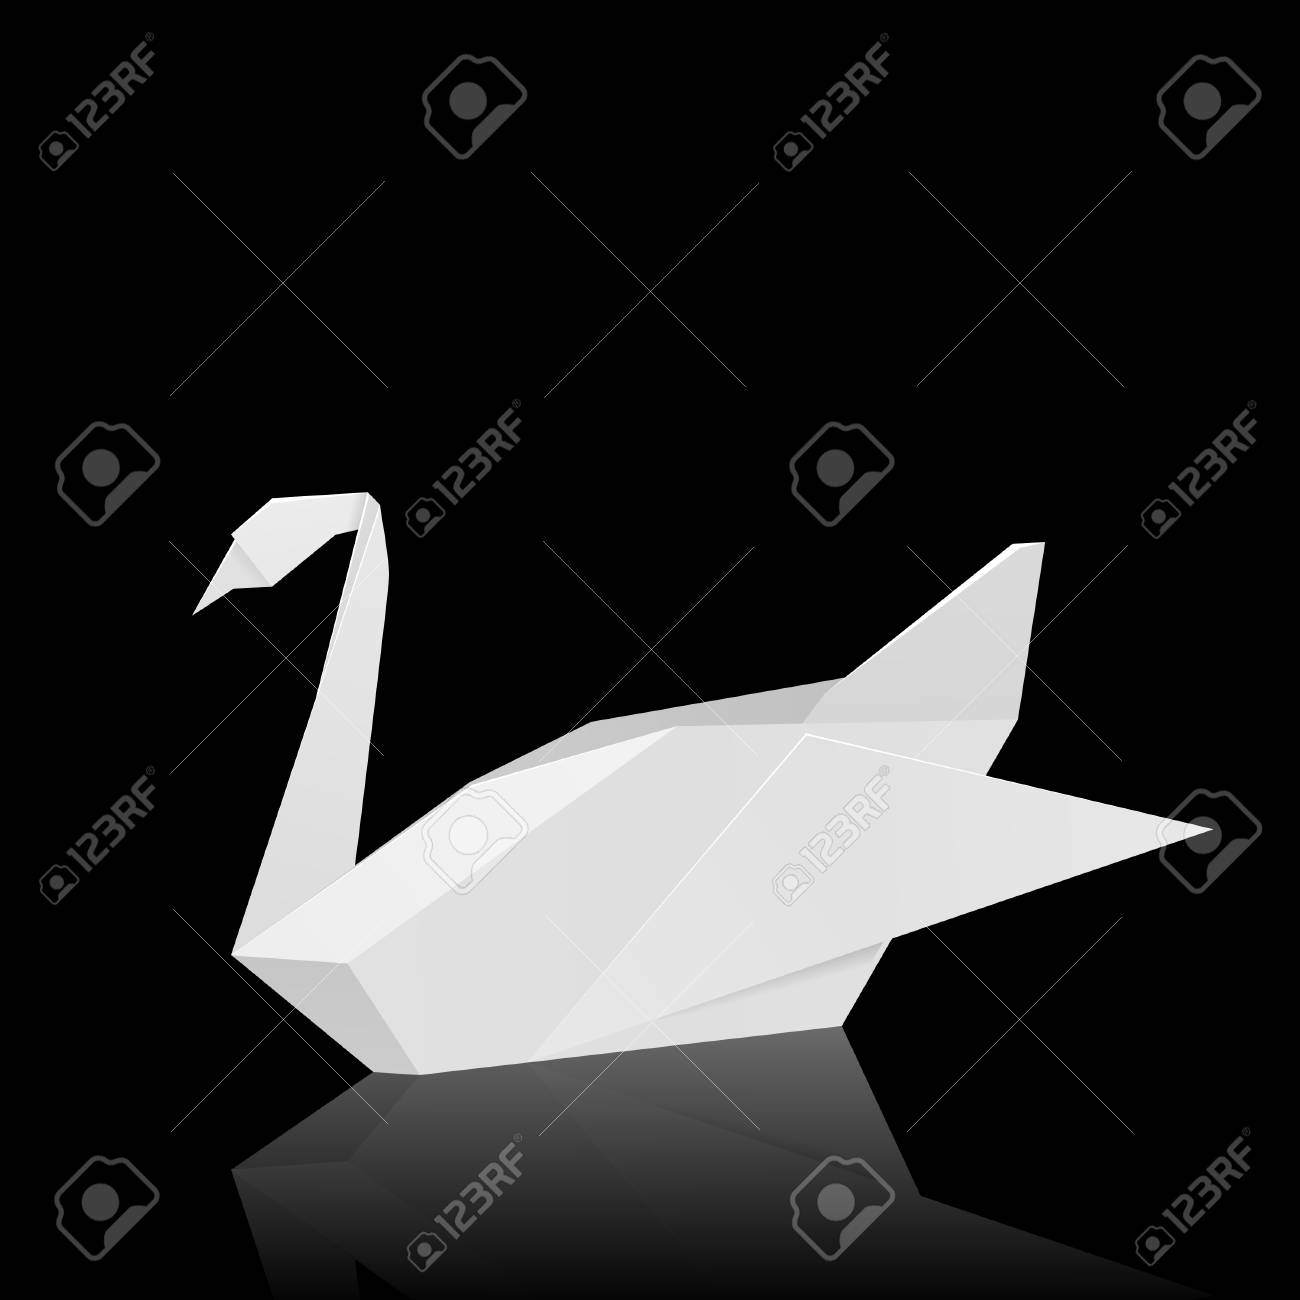 How To Make an Origami Flapping Bird - YouTube | 1300x1300